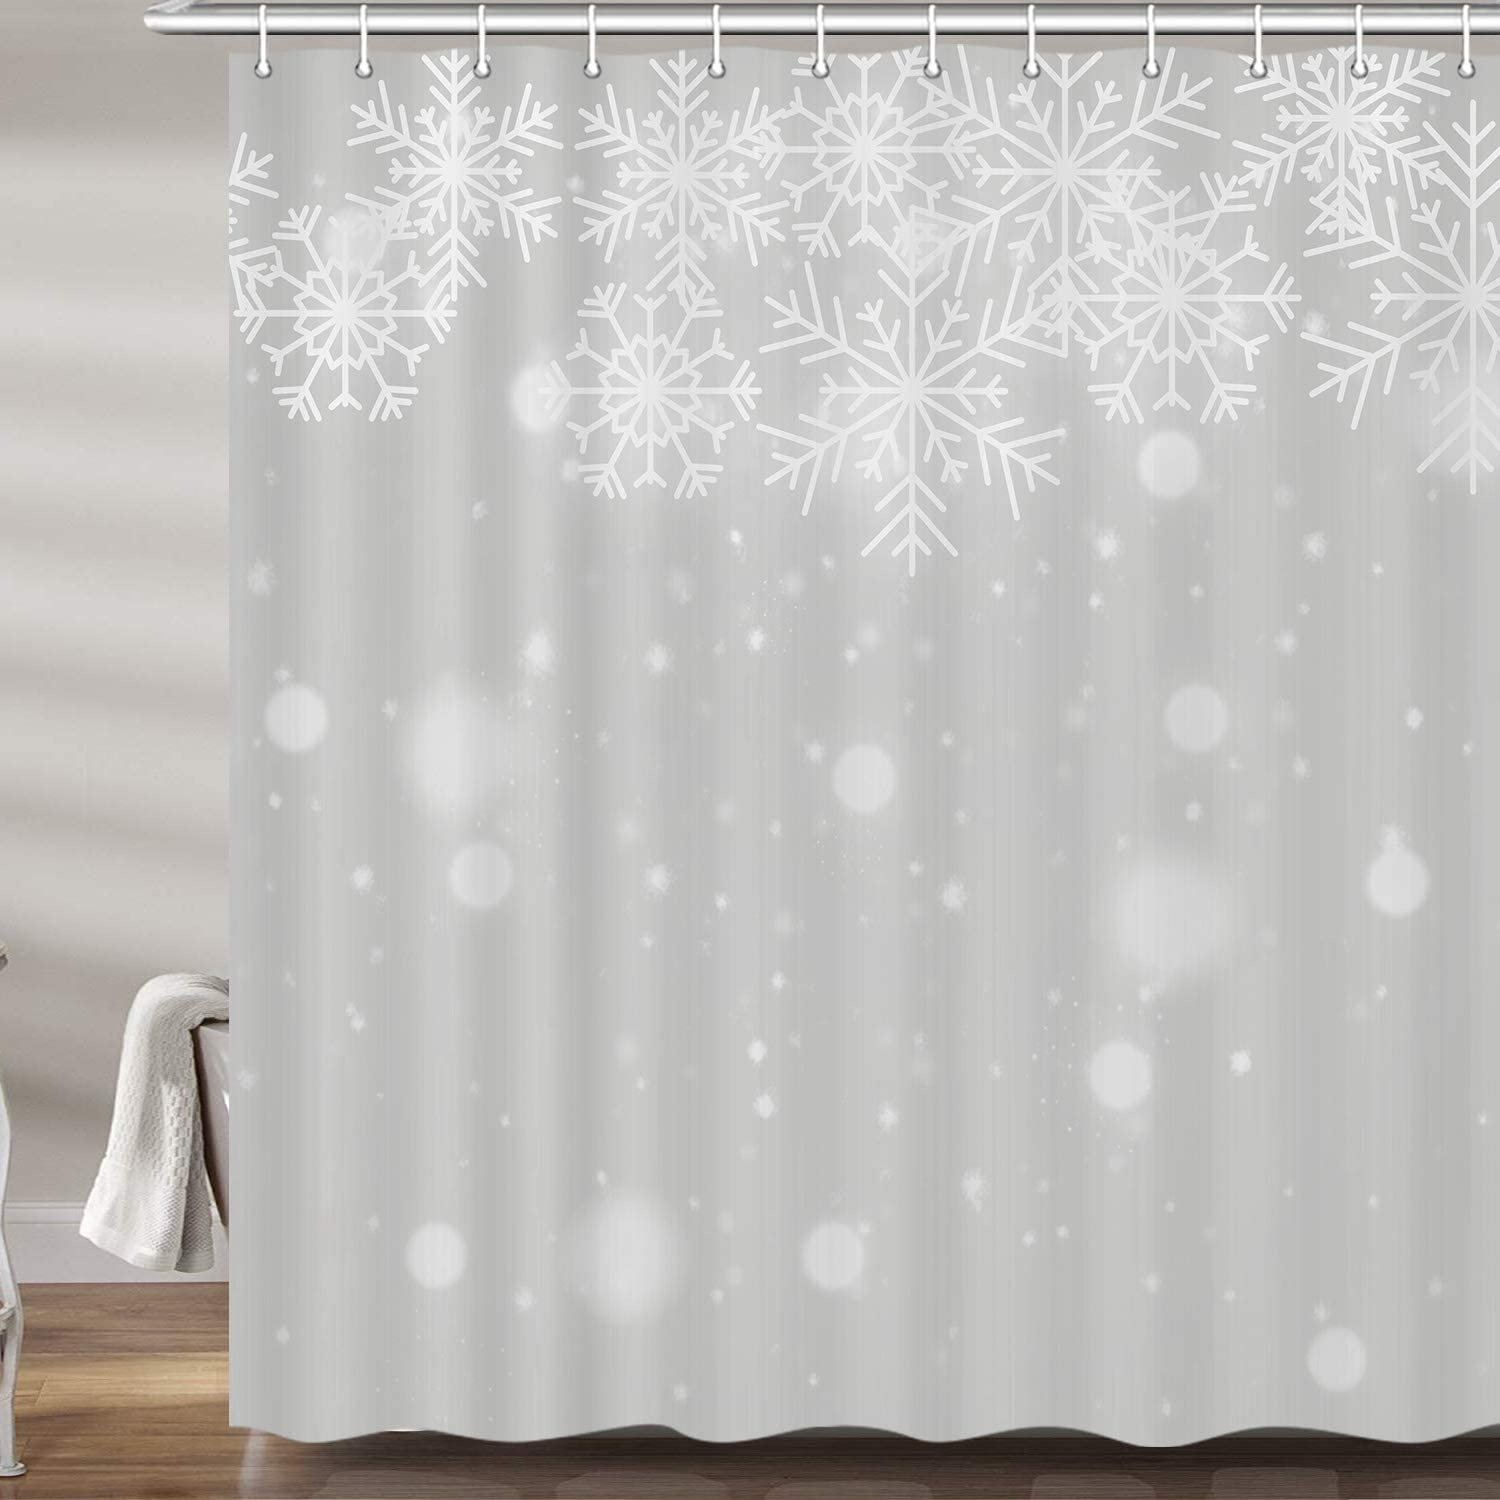 DYNH Christmas Background Shower Curtain Set, Winter White Silver Snowflake Xmas Premium Fabric Bath Curtains, Bathroom Accessories Decor with 12 Hooks, 69X70Inches